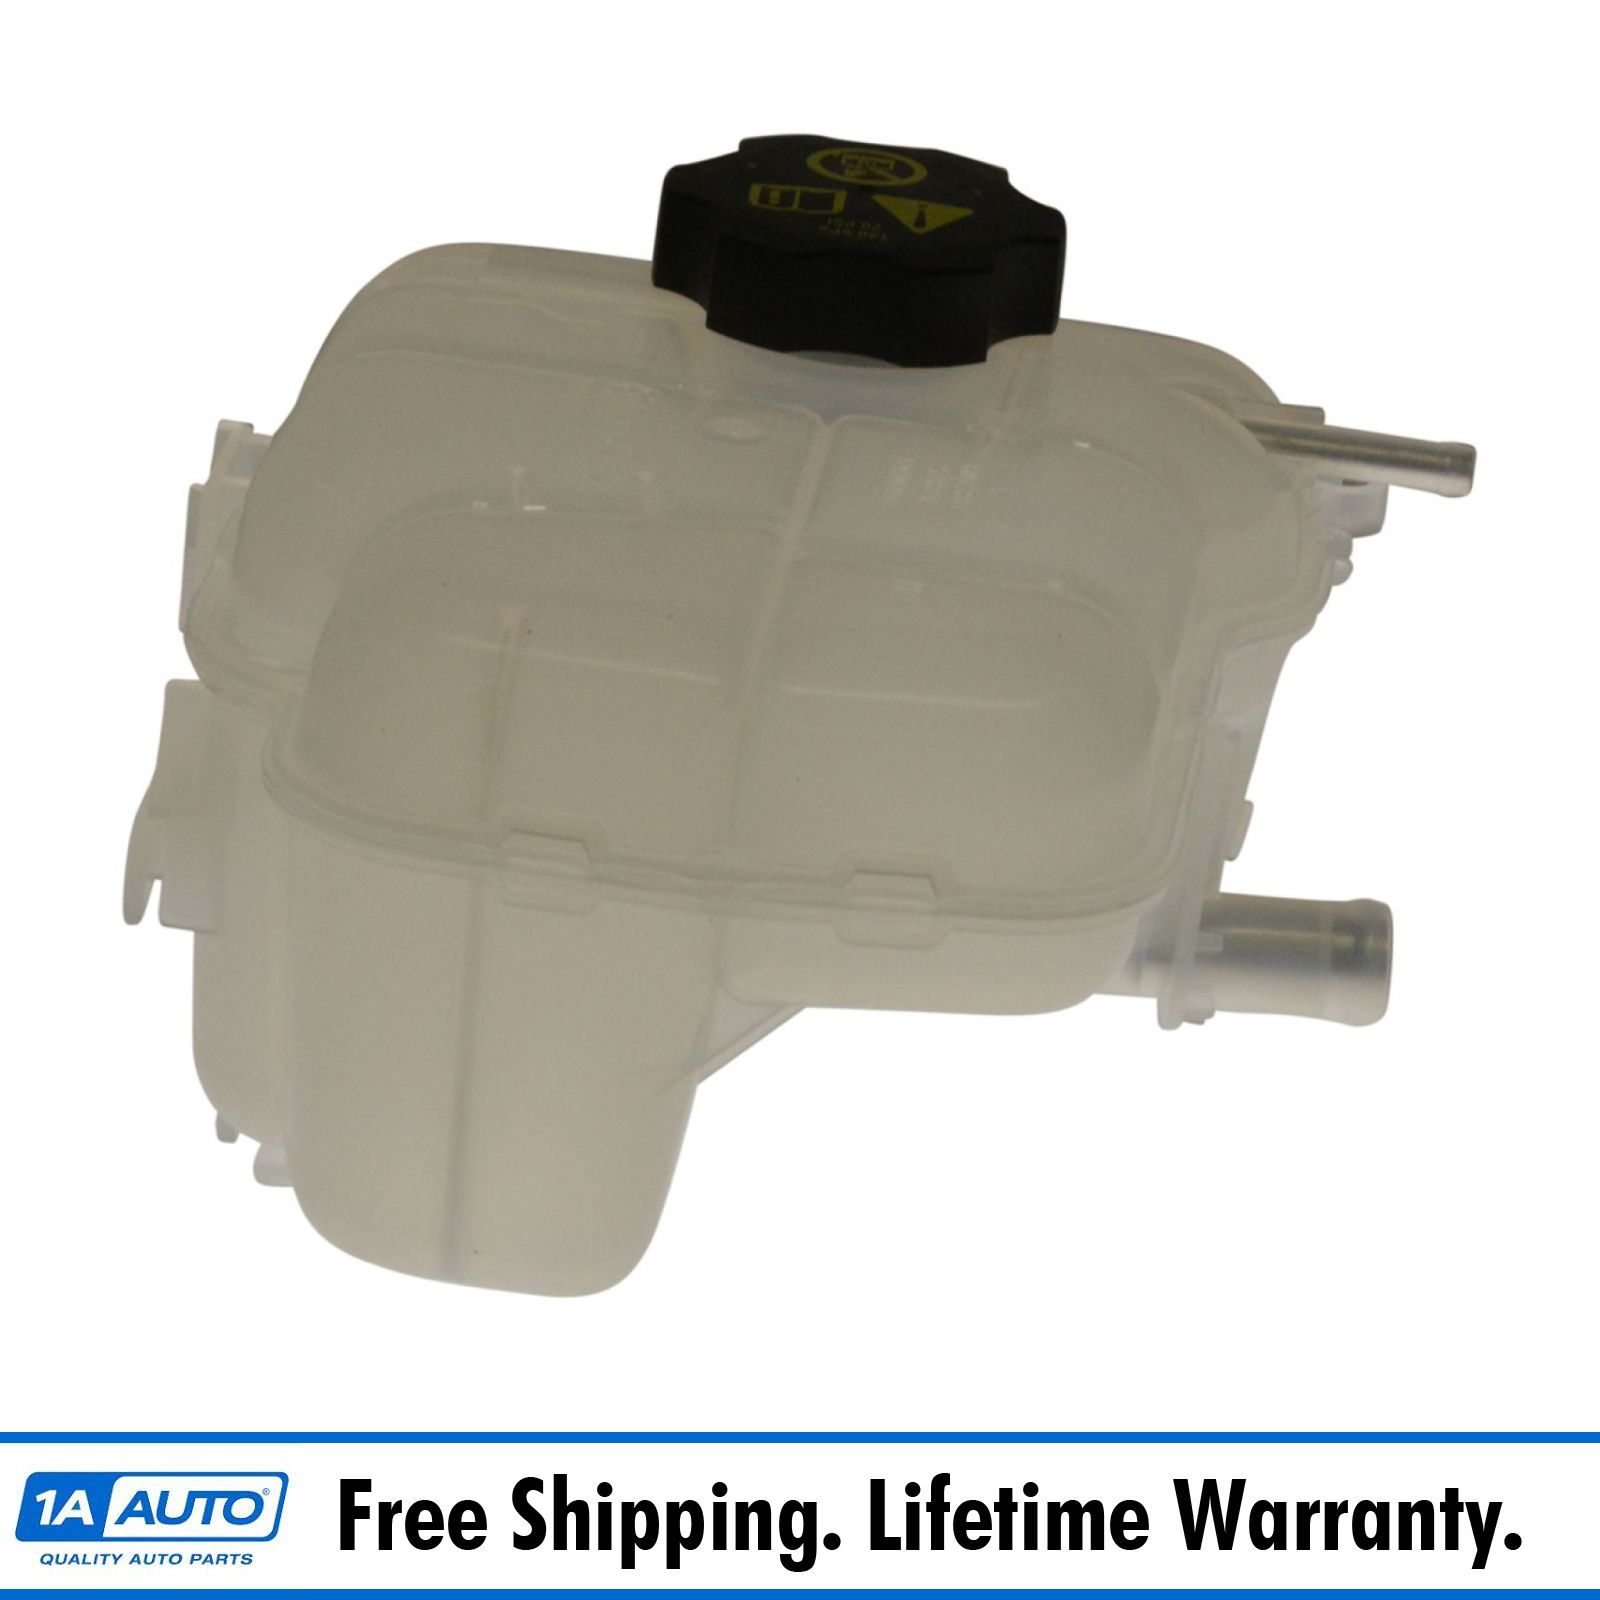 Coolant Reservoir Radiator Overflow Bottle Tank for Chevy Buick GM New